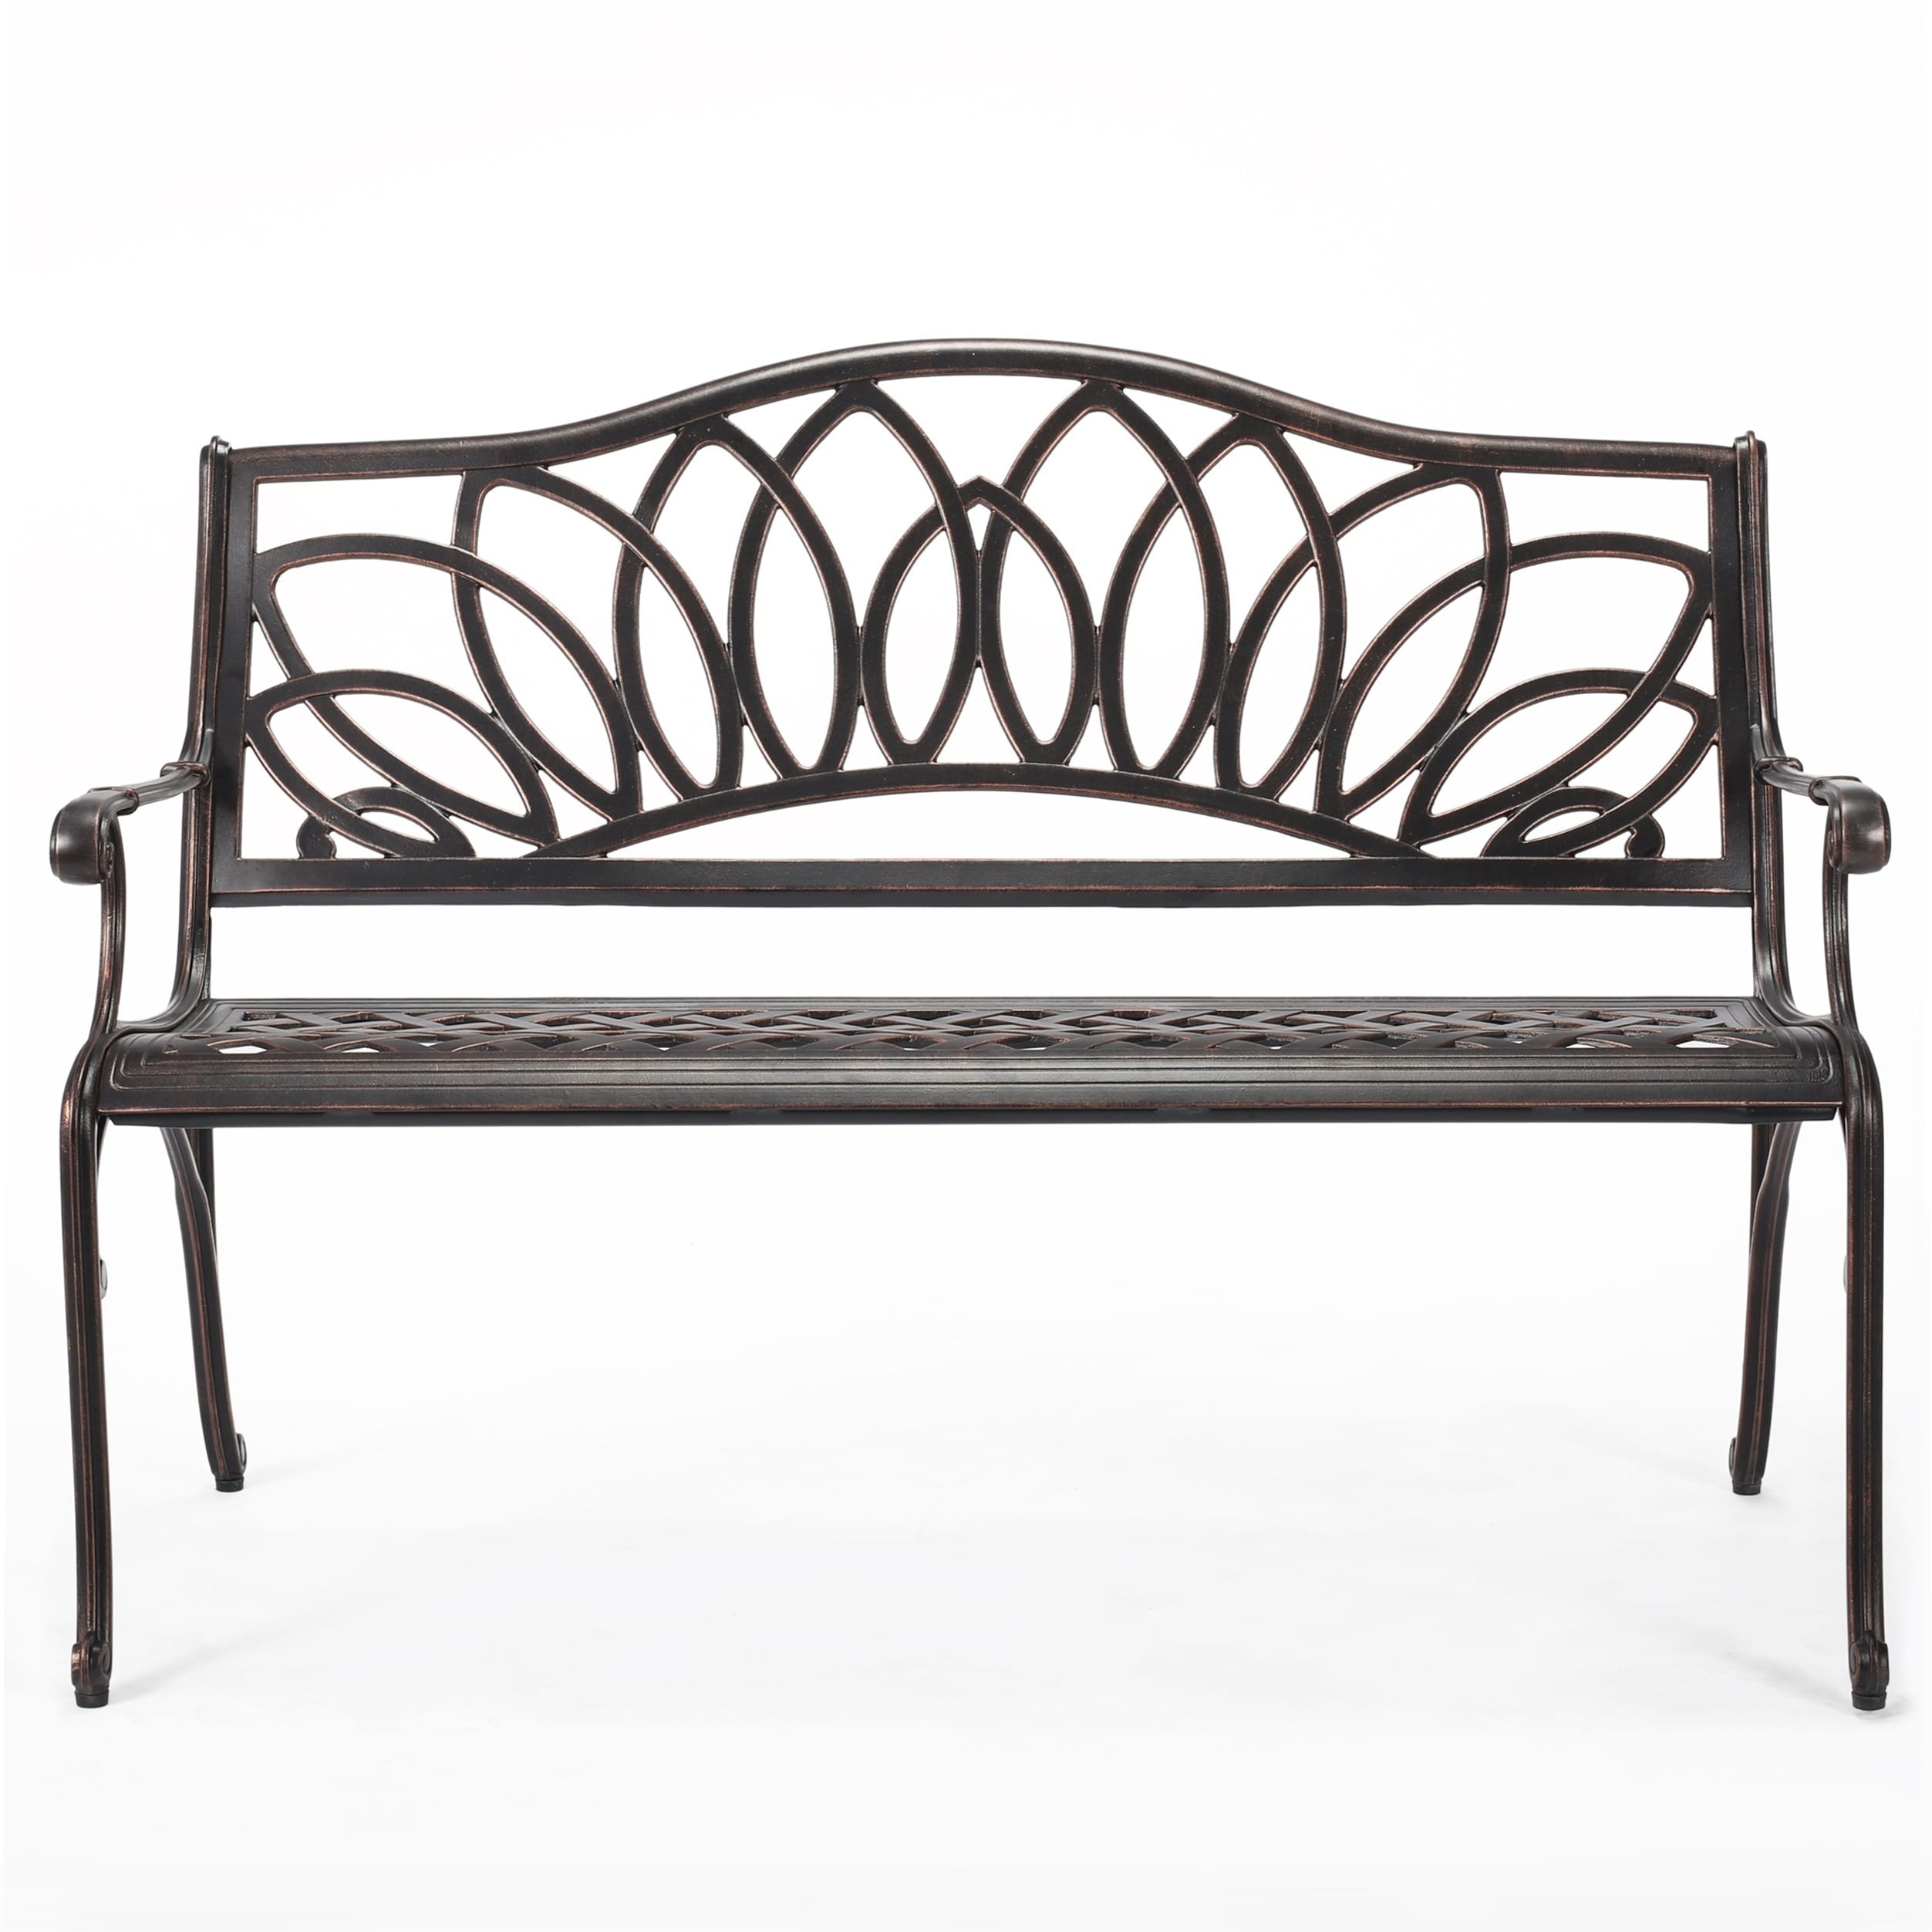 metal cafe bench joanna number elements home accent by products outdoor with magnolia item gaines